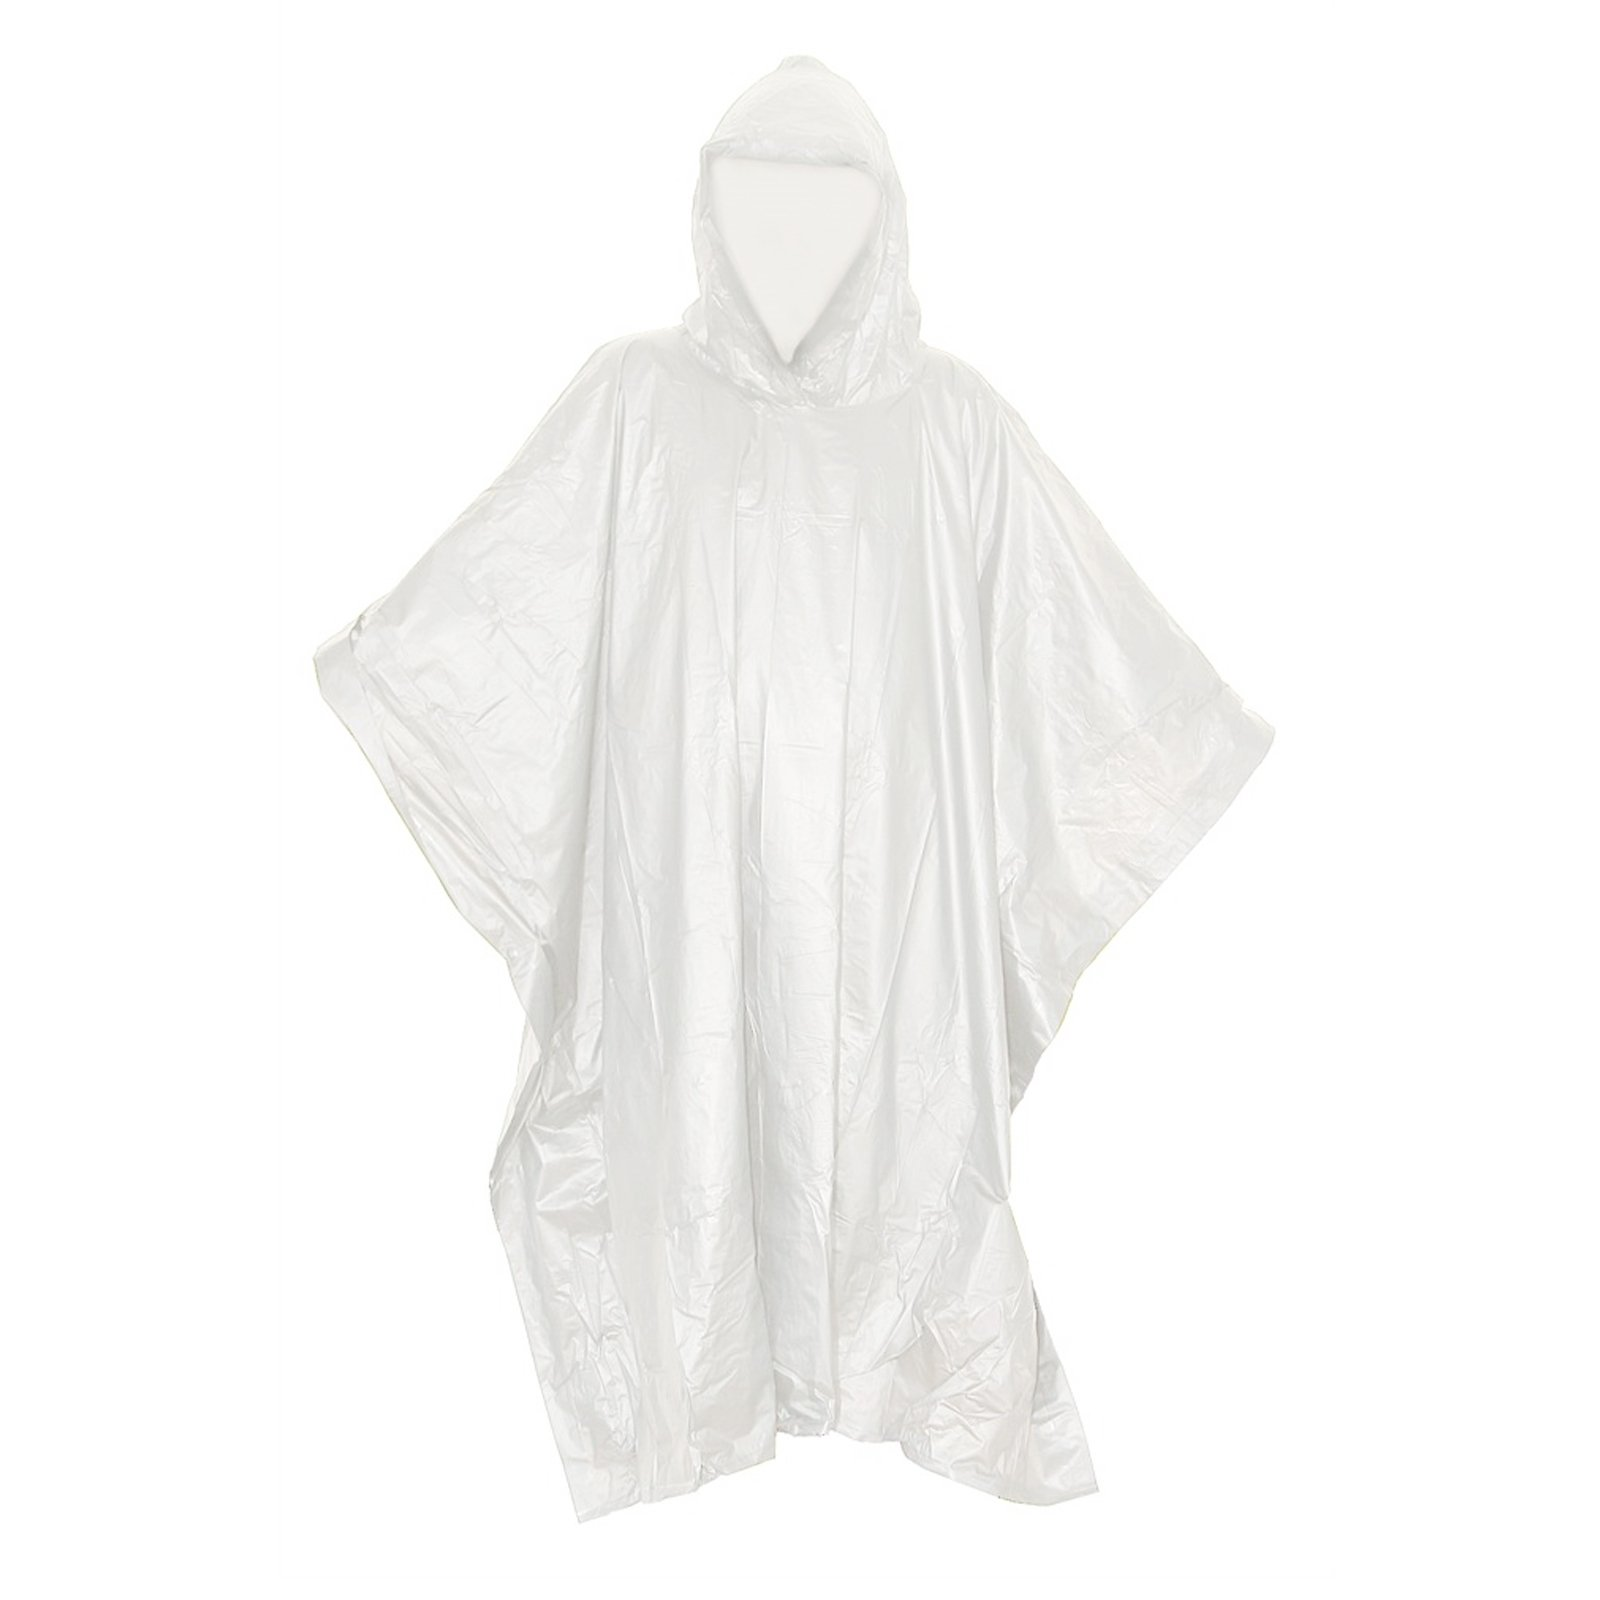 ASR Outdoor Clear Emergency Poncho - 5 Pack